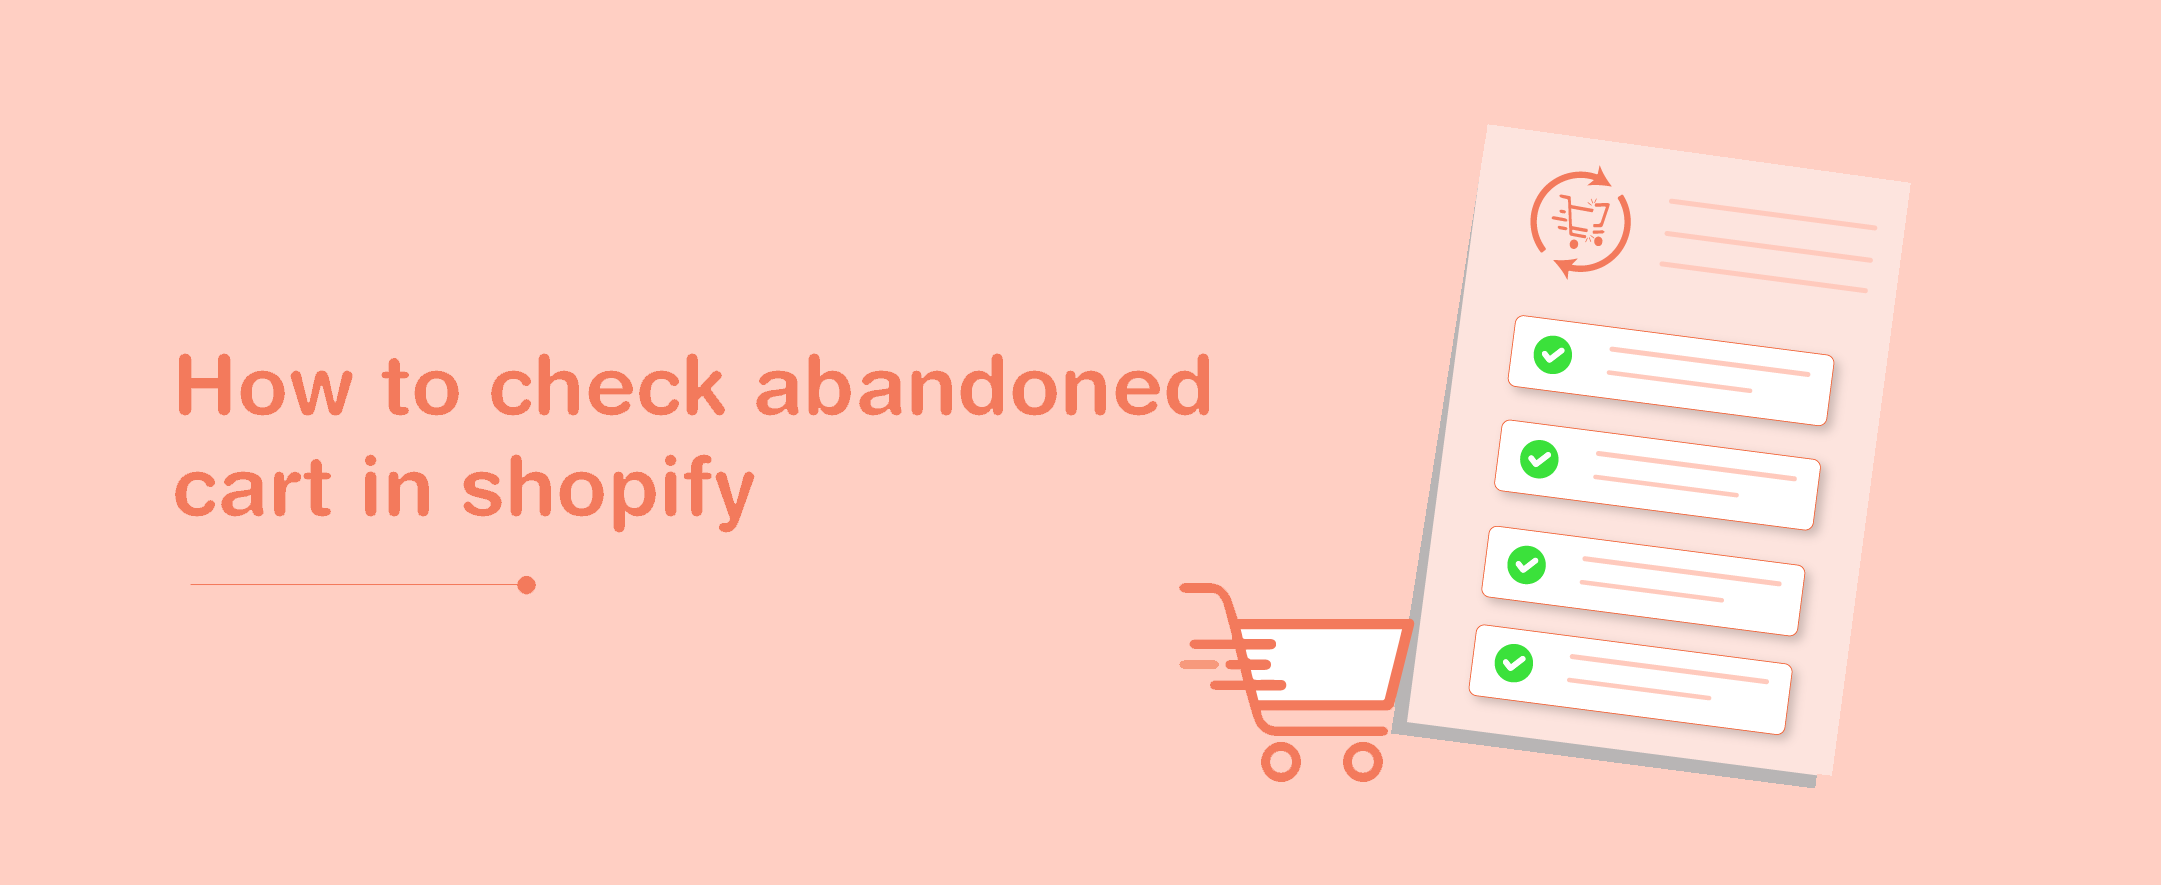 How to Check Abandoned Carts in Shopify?